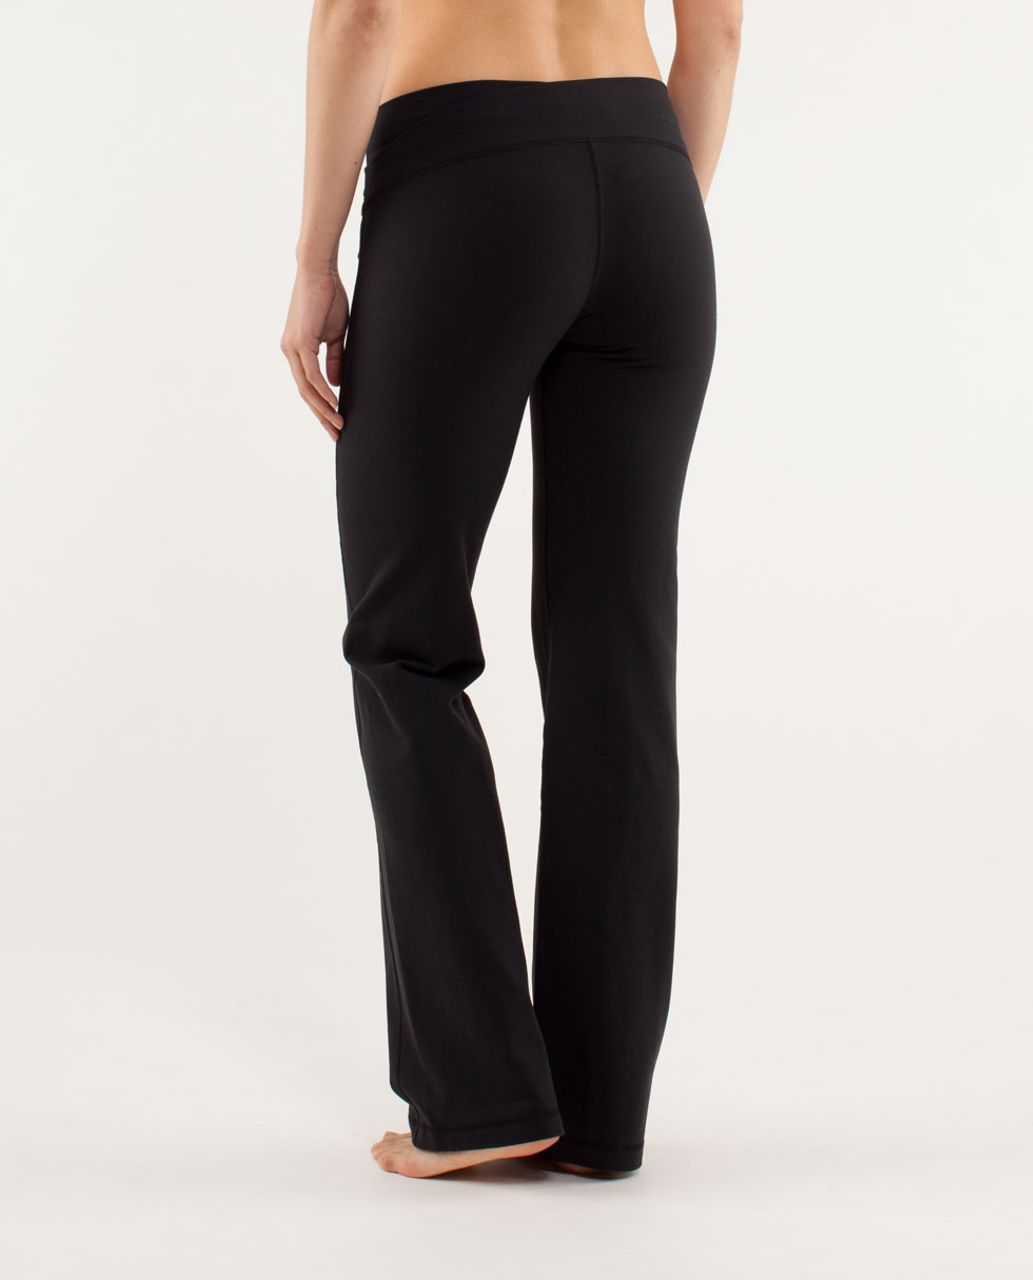 Lululemon Astro Pant (Tall) - Black